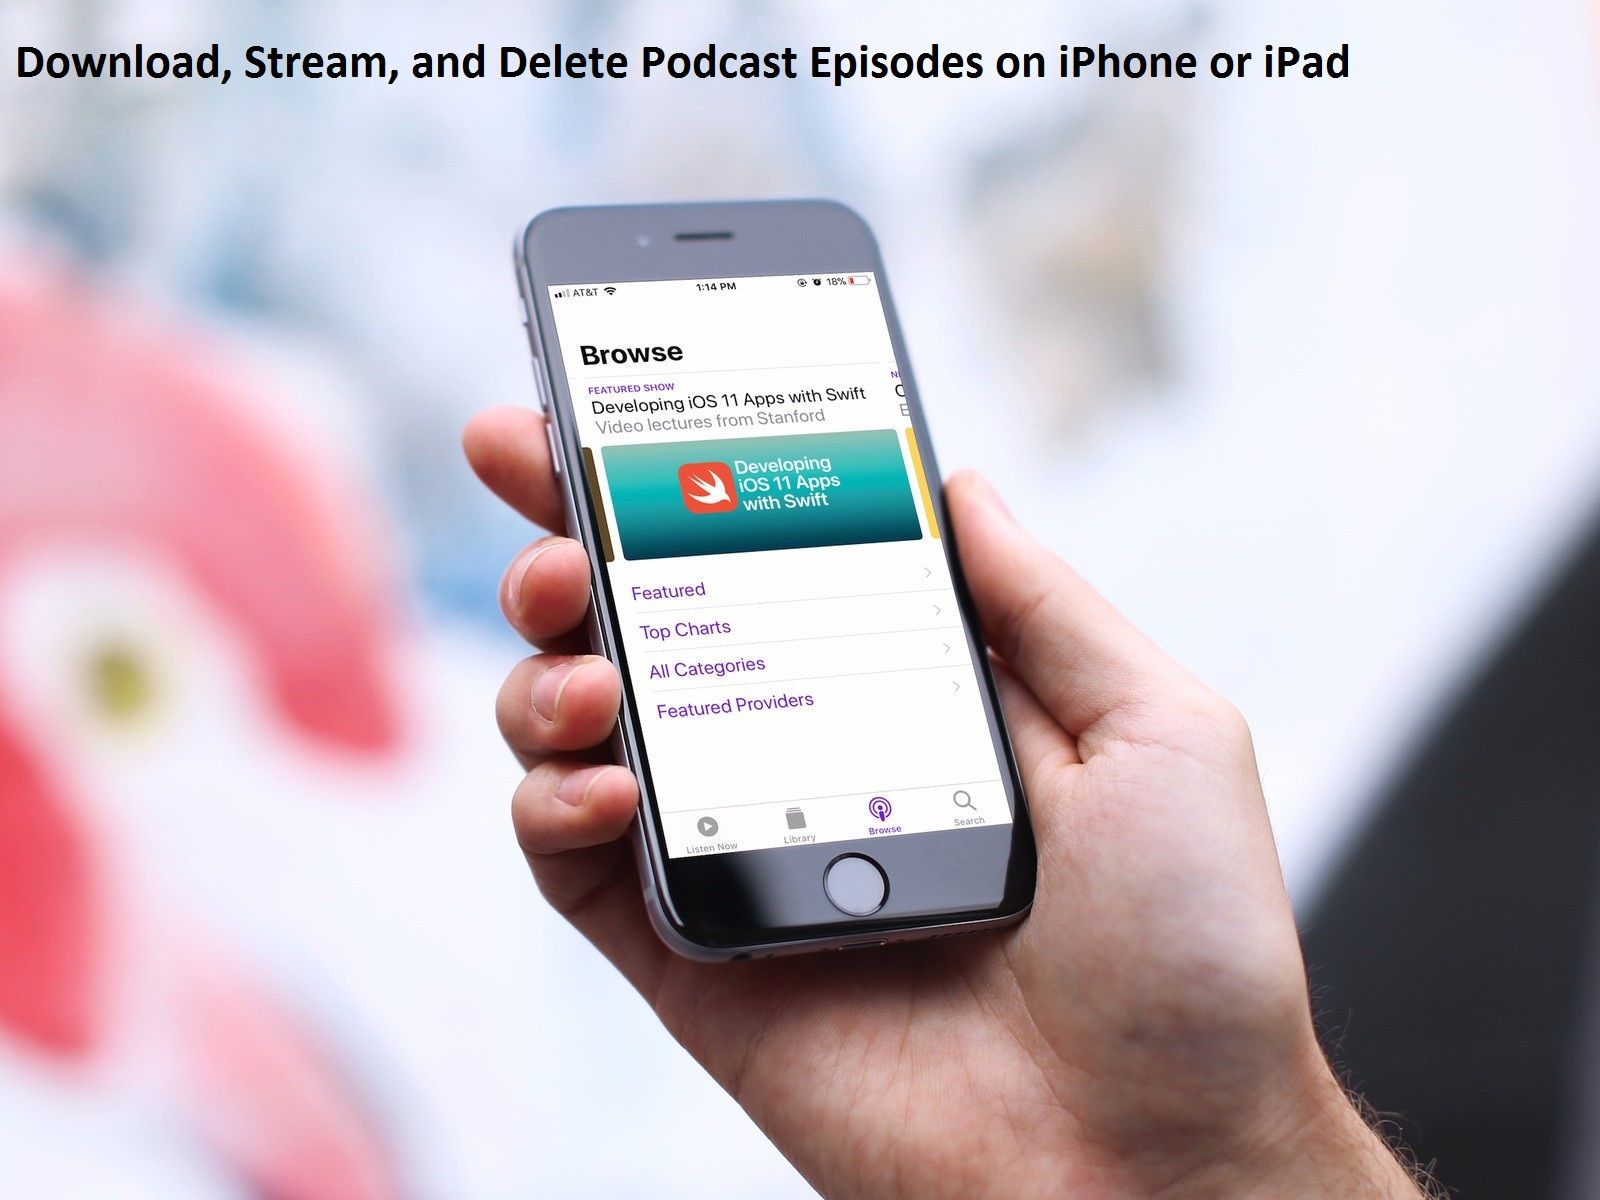 How to Download, Stream, and Delete Podcast Episodes on